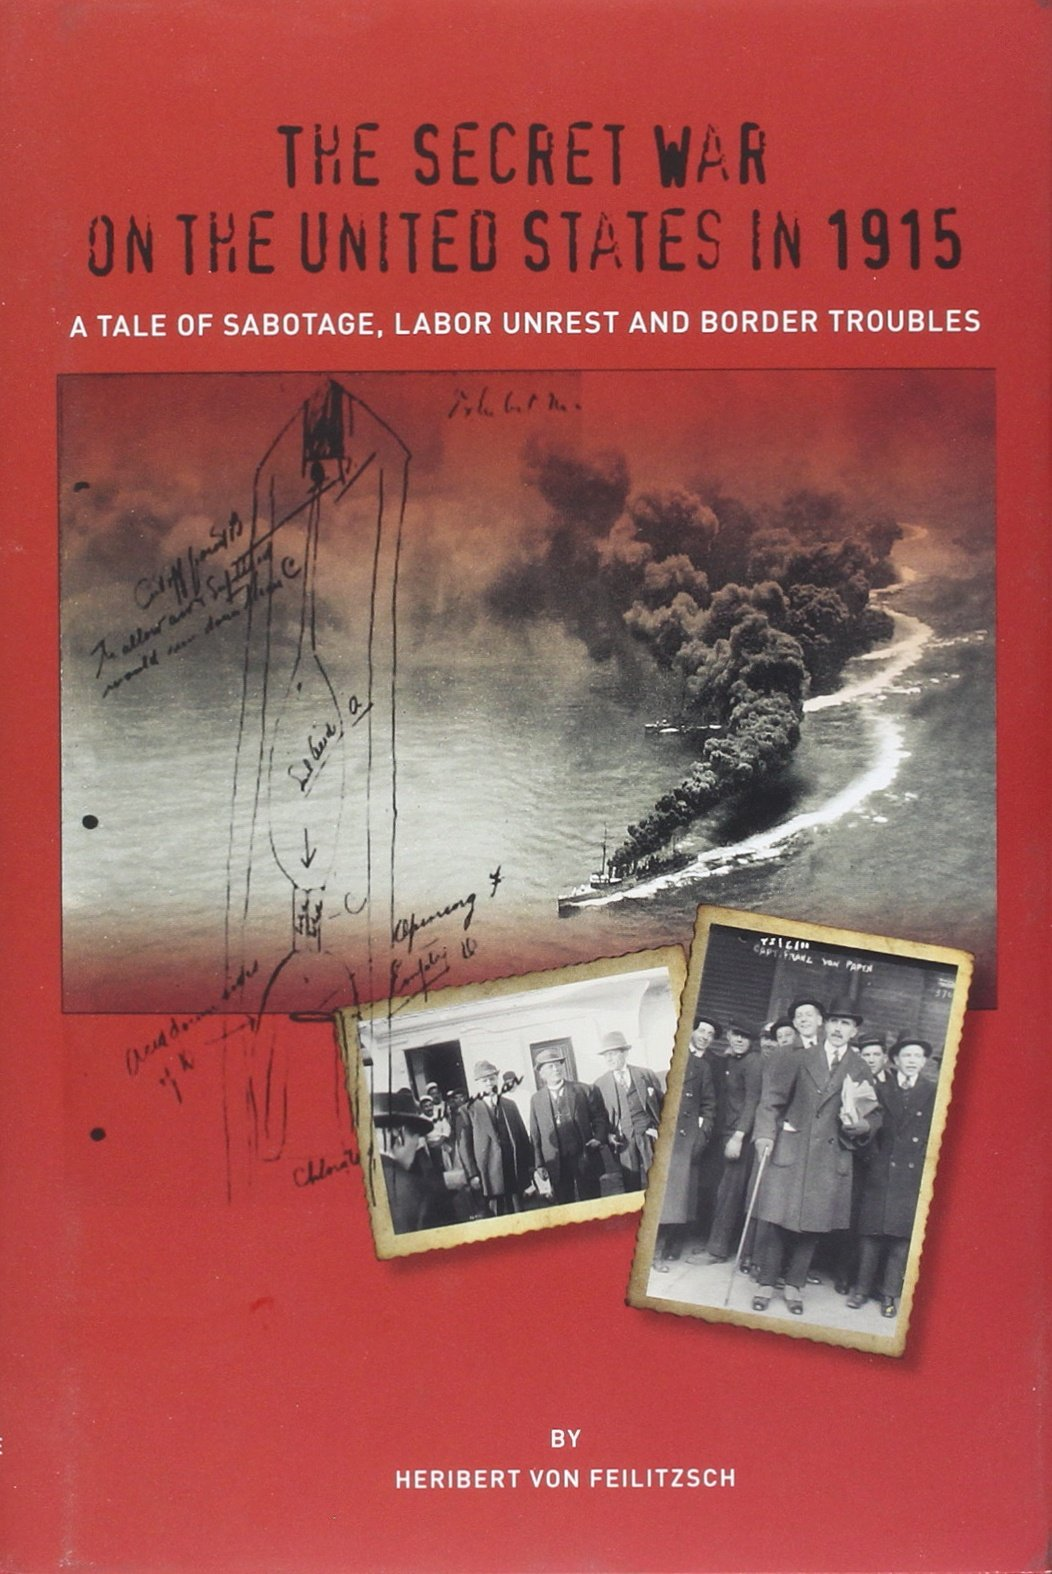 The Secret War on the United States in 1915: A Tale of Sabotage, Labor Unrest and Border Troubles (Secret War Council) pdf epub